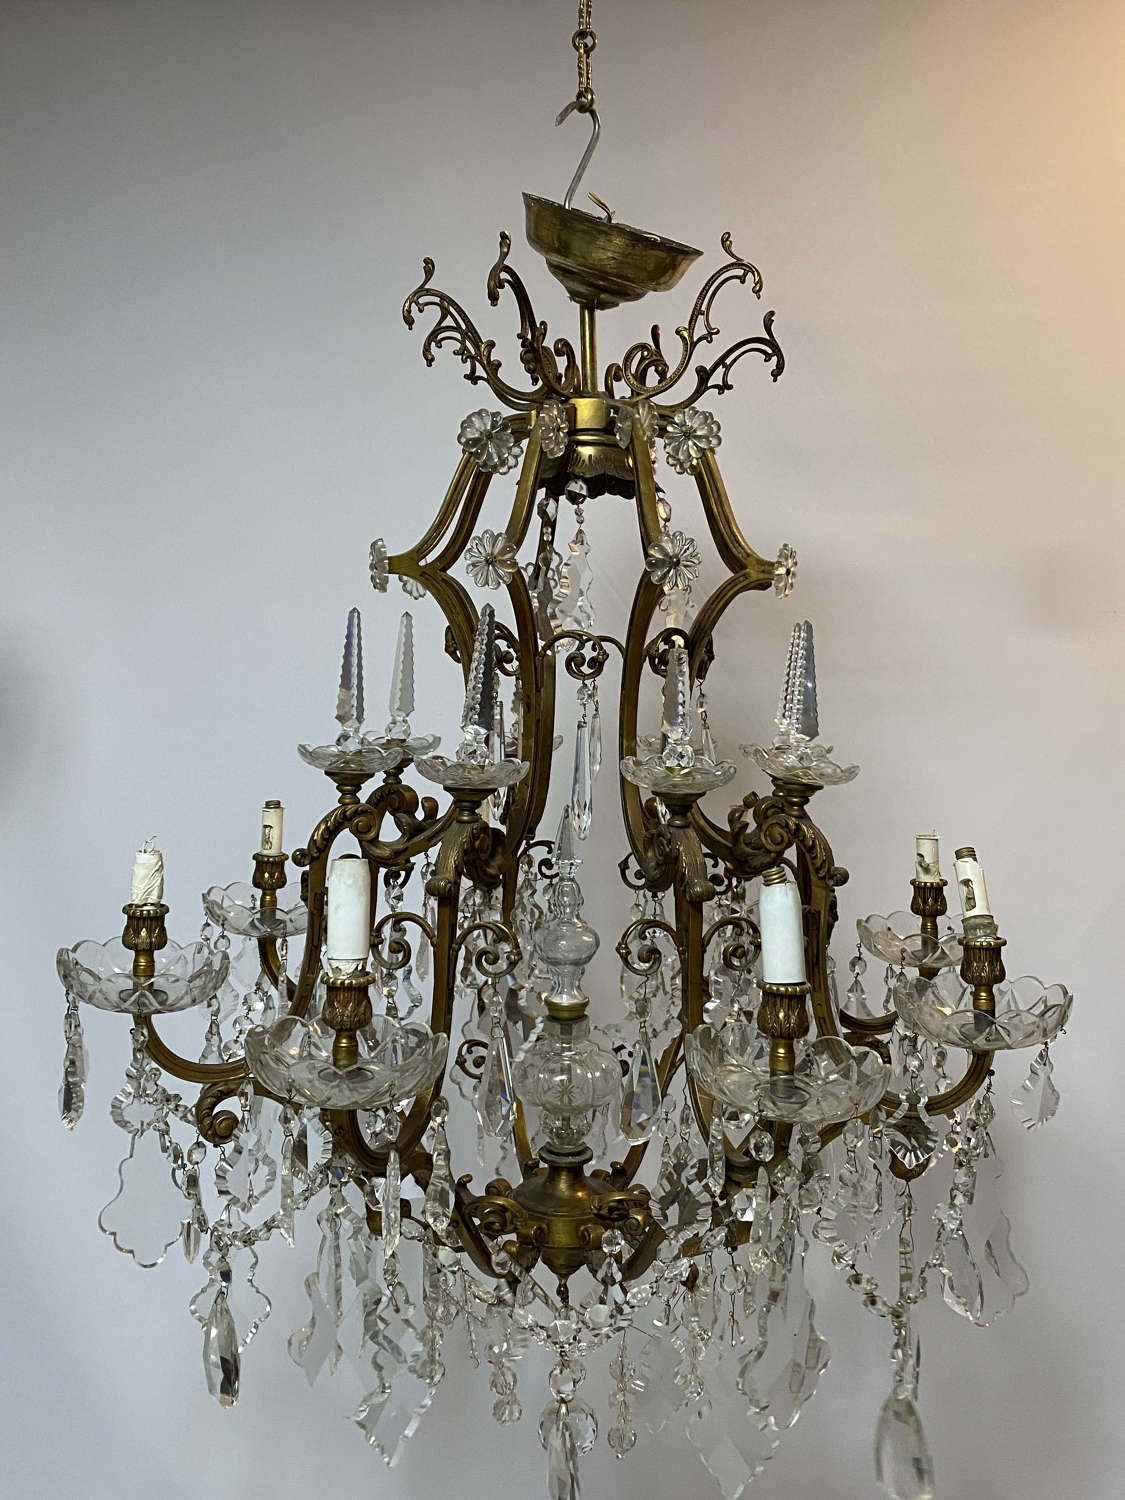 A guit rococo style French chandelier